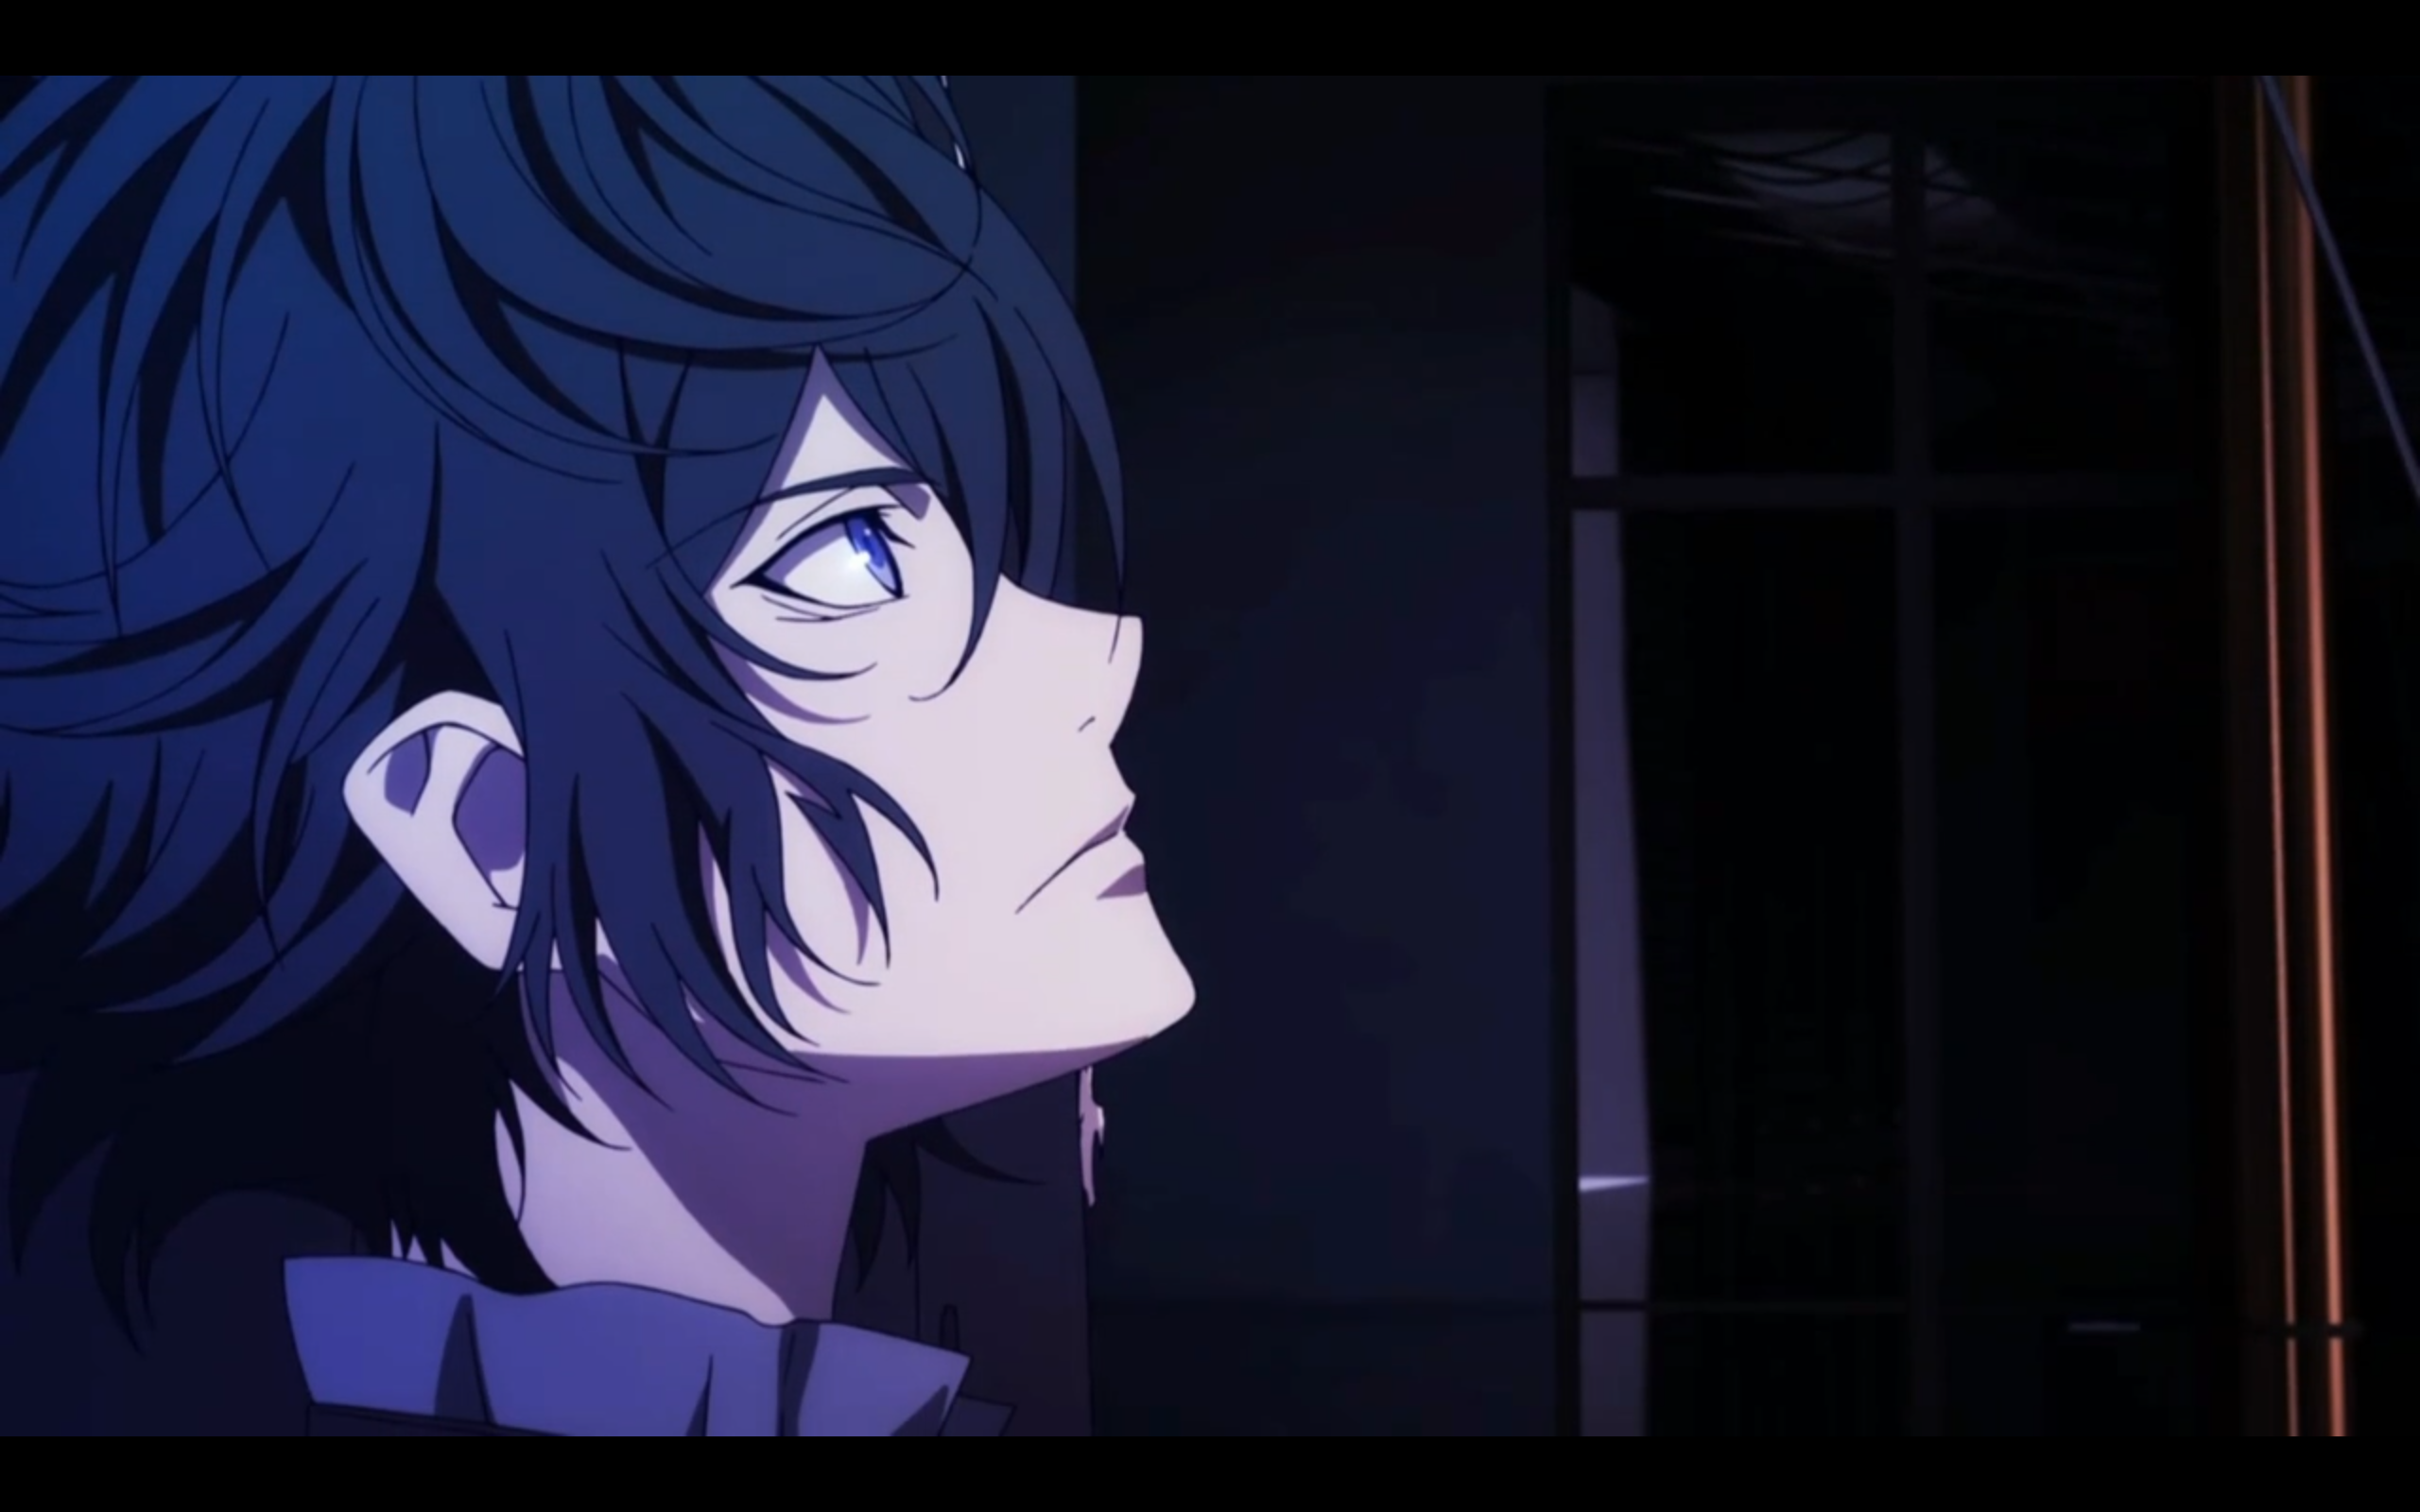 K - Return Of Kings - ep6 - Nagare | K project, Suoh mikoto, Awesome anime